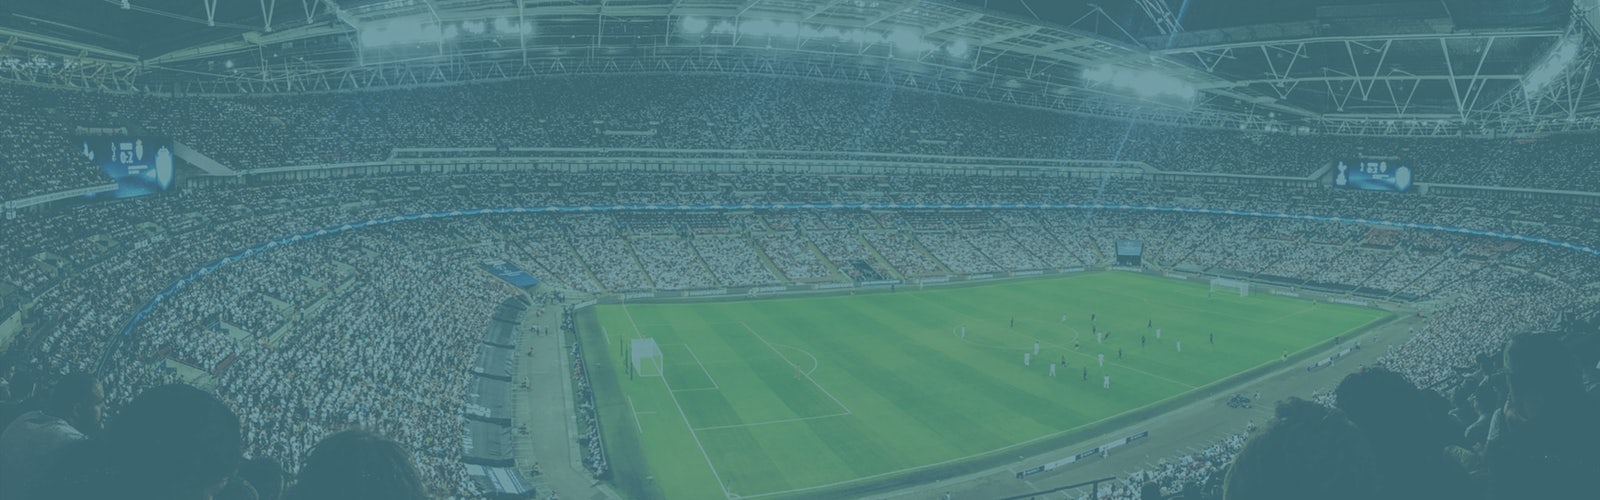 Soccer Betting Sites Background graphic